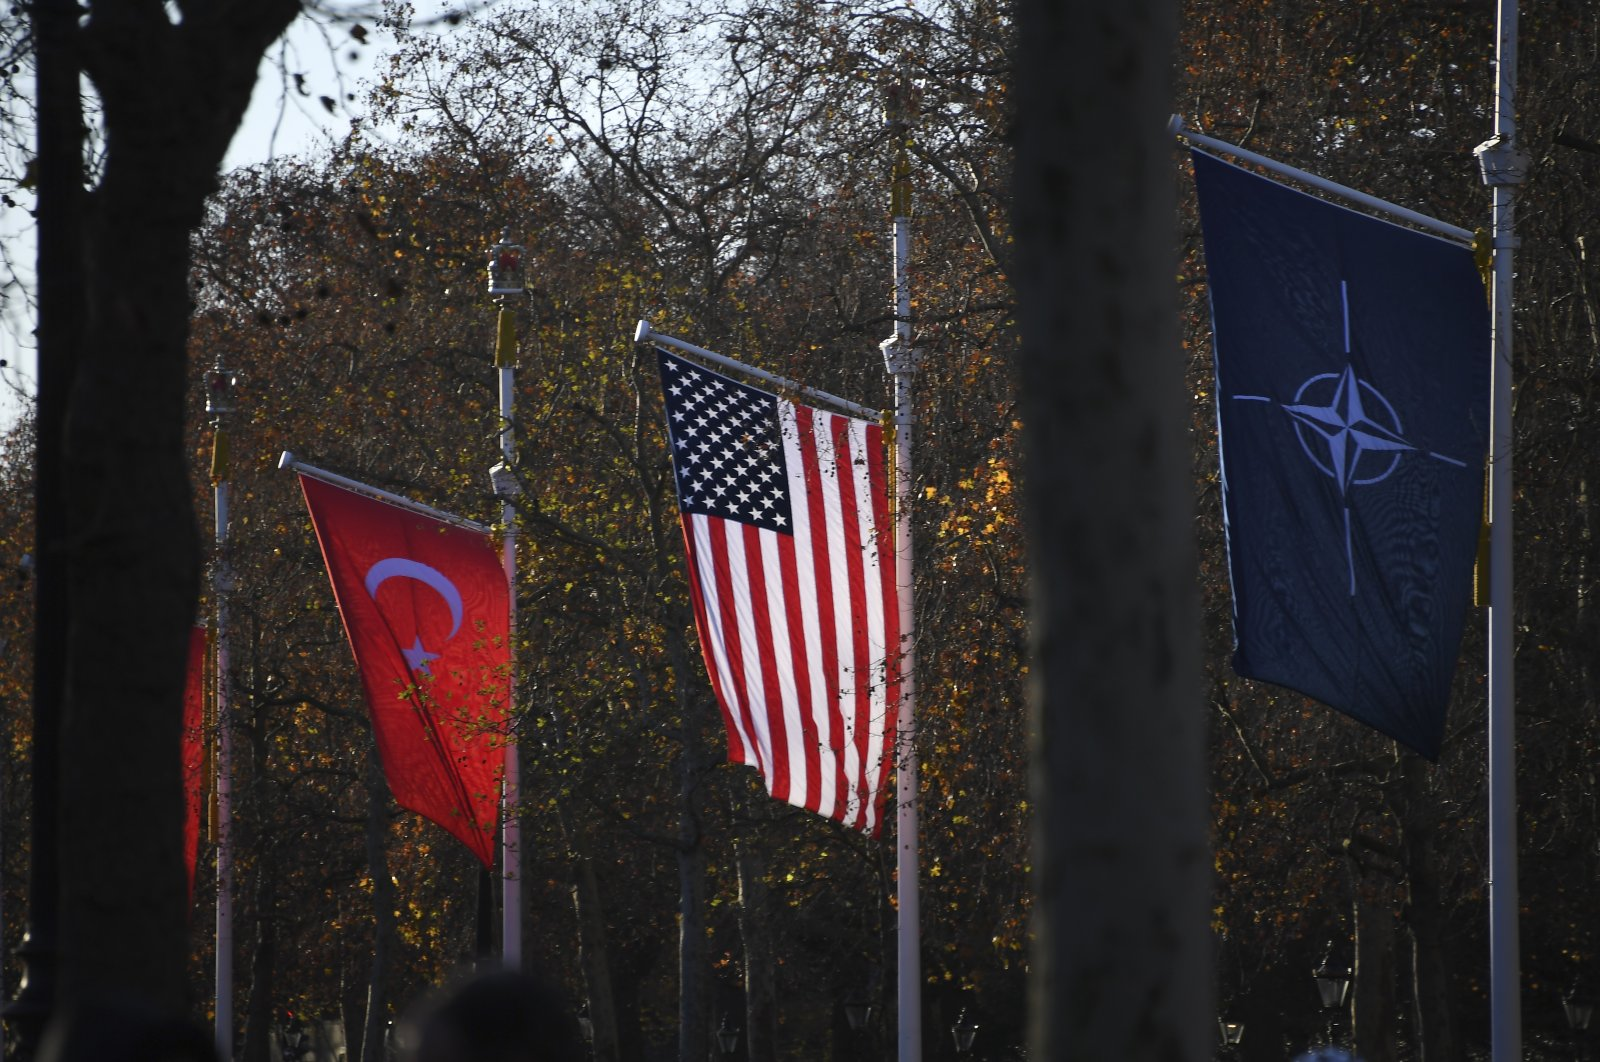 The flags of Turkey, the U.S. and NATO line London's primary ceremonial road The Mall at Buckingham Palace, Dec. 3, 2019. (AP Photo)